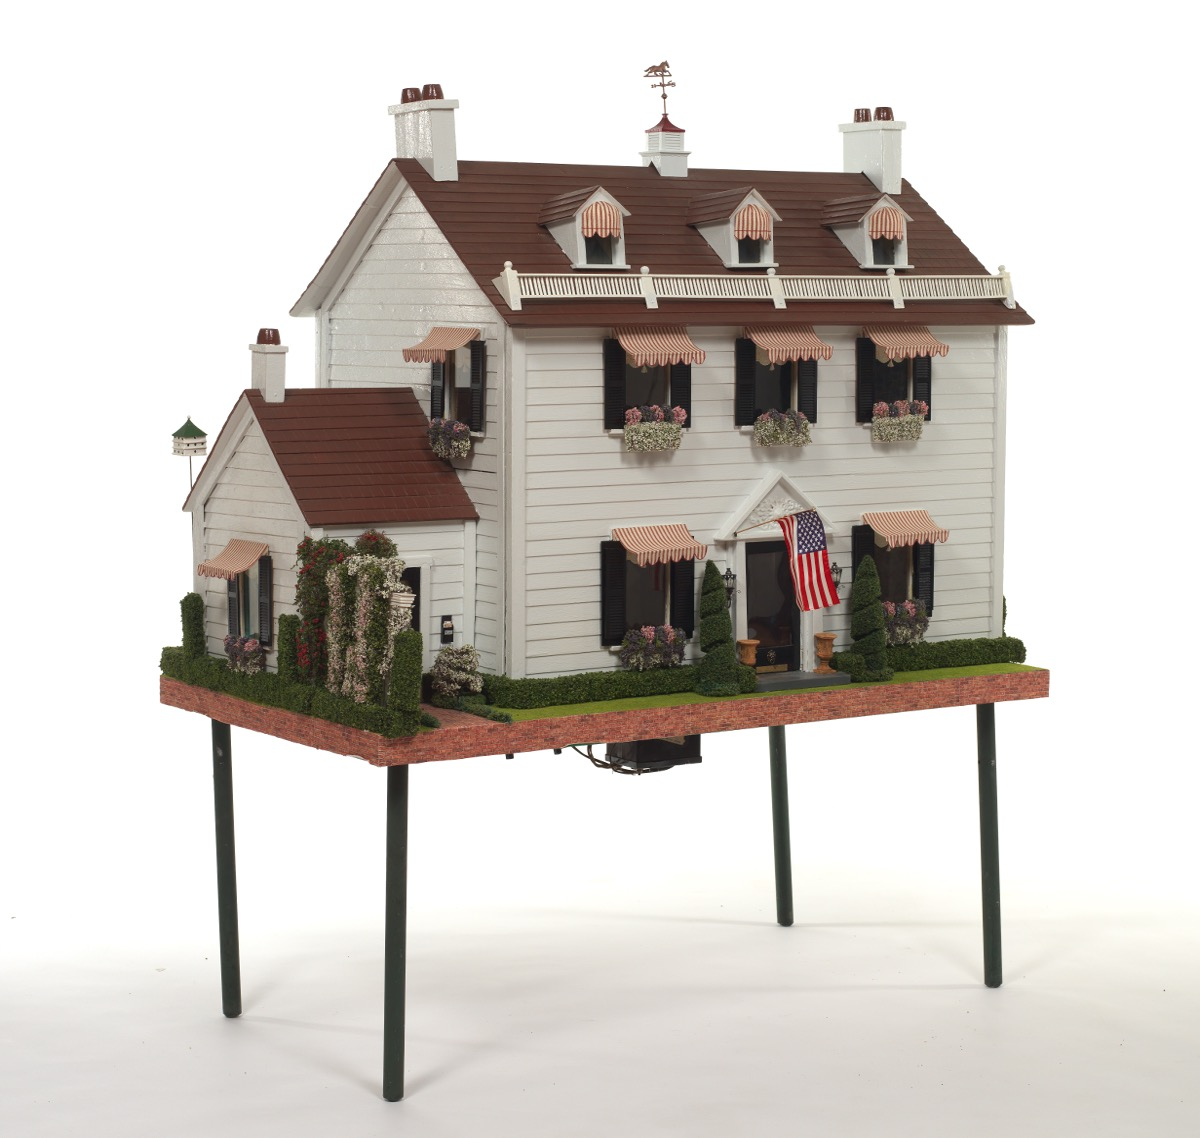 doll house colonial classic style ca 1940 s 10 29 16 sold 590 Vintage 1960s Barbie Doll House doll house colonial classic style ca 1940 s